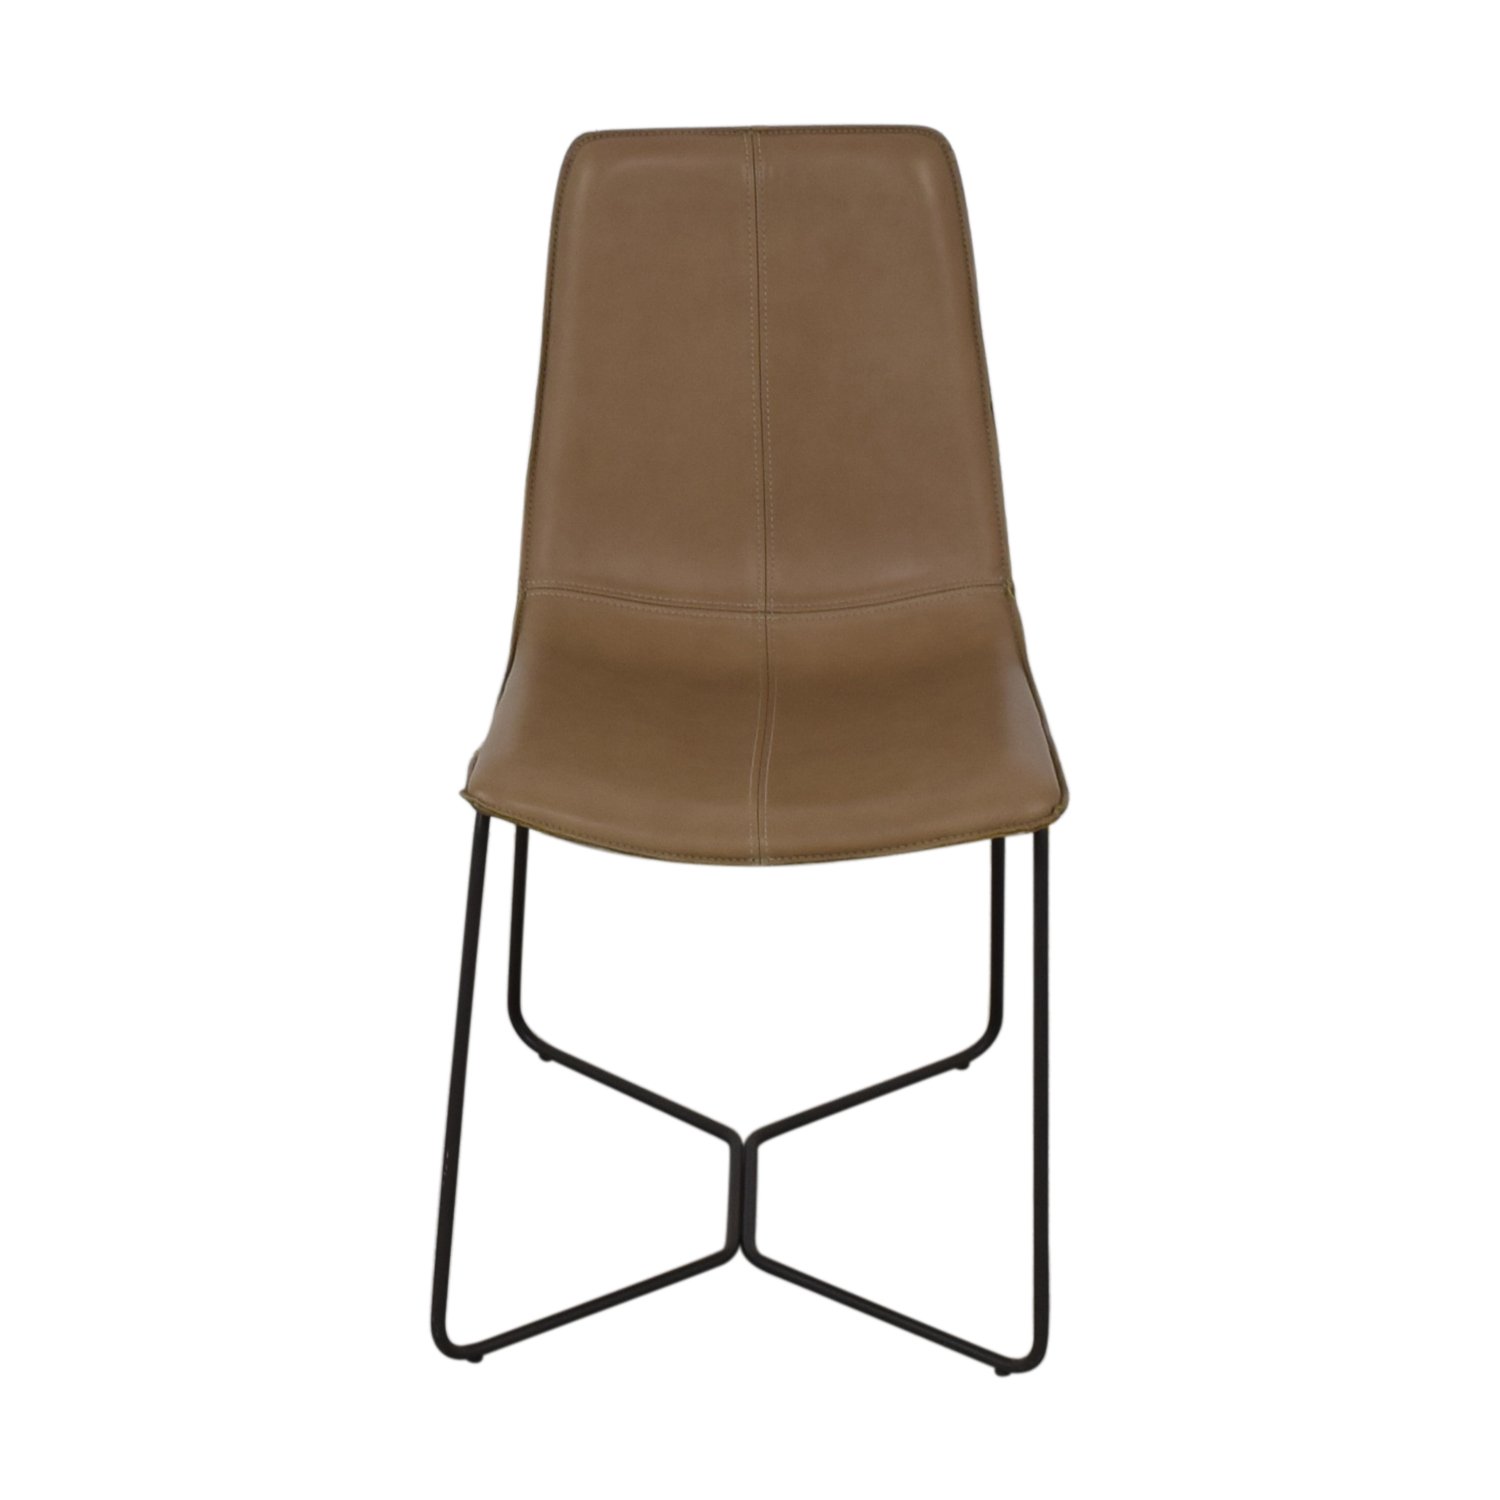 West Elm West Elm Leather Slope Dining Chair nj